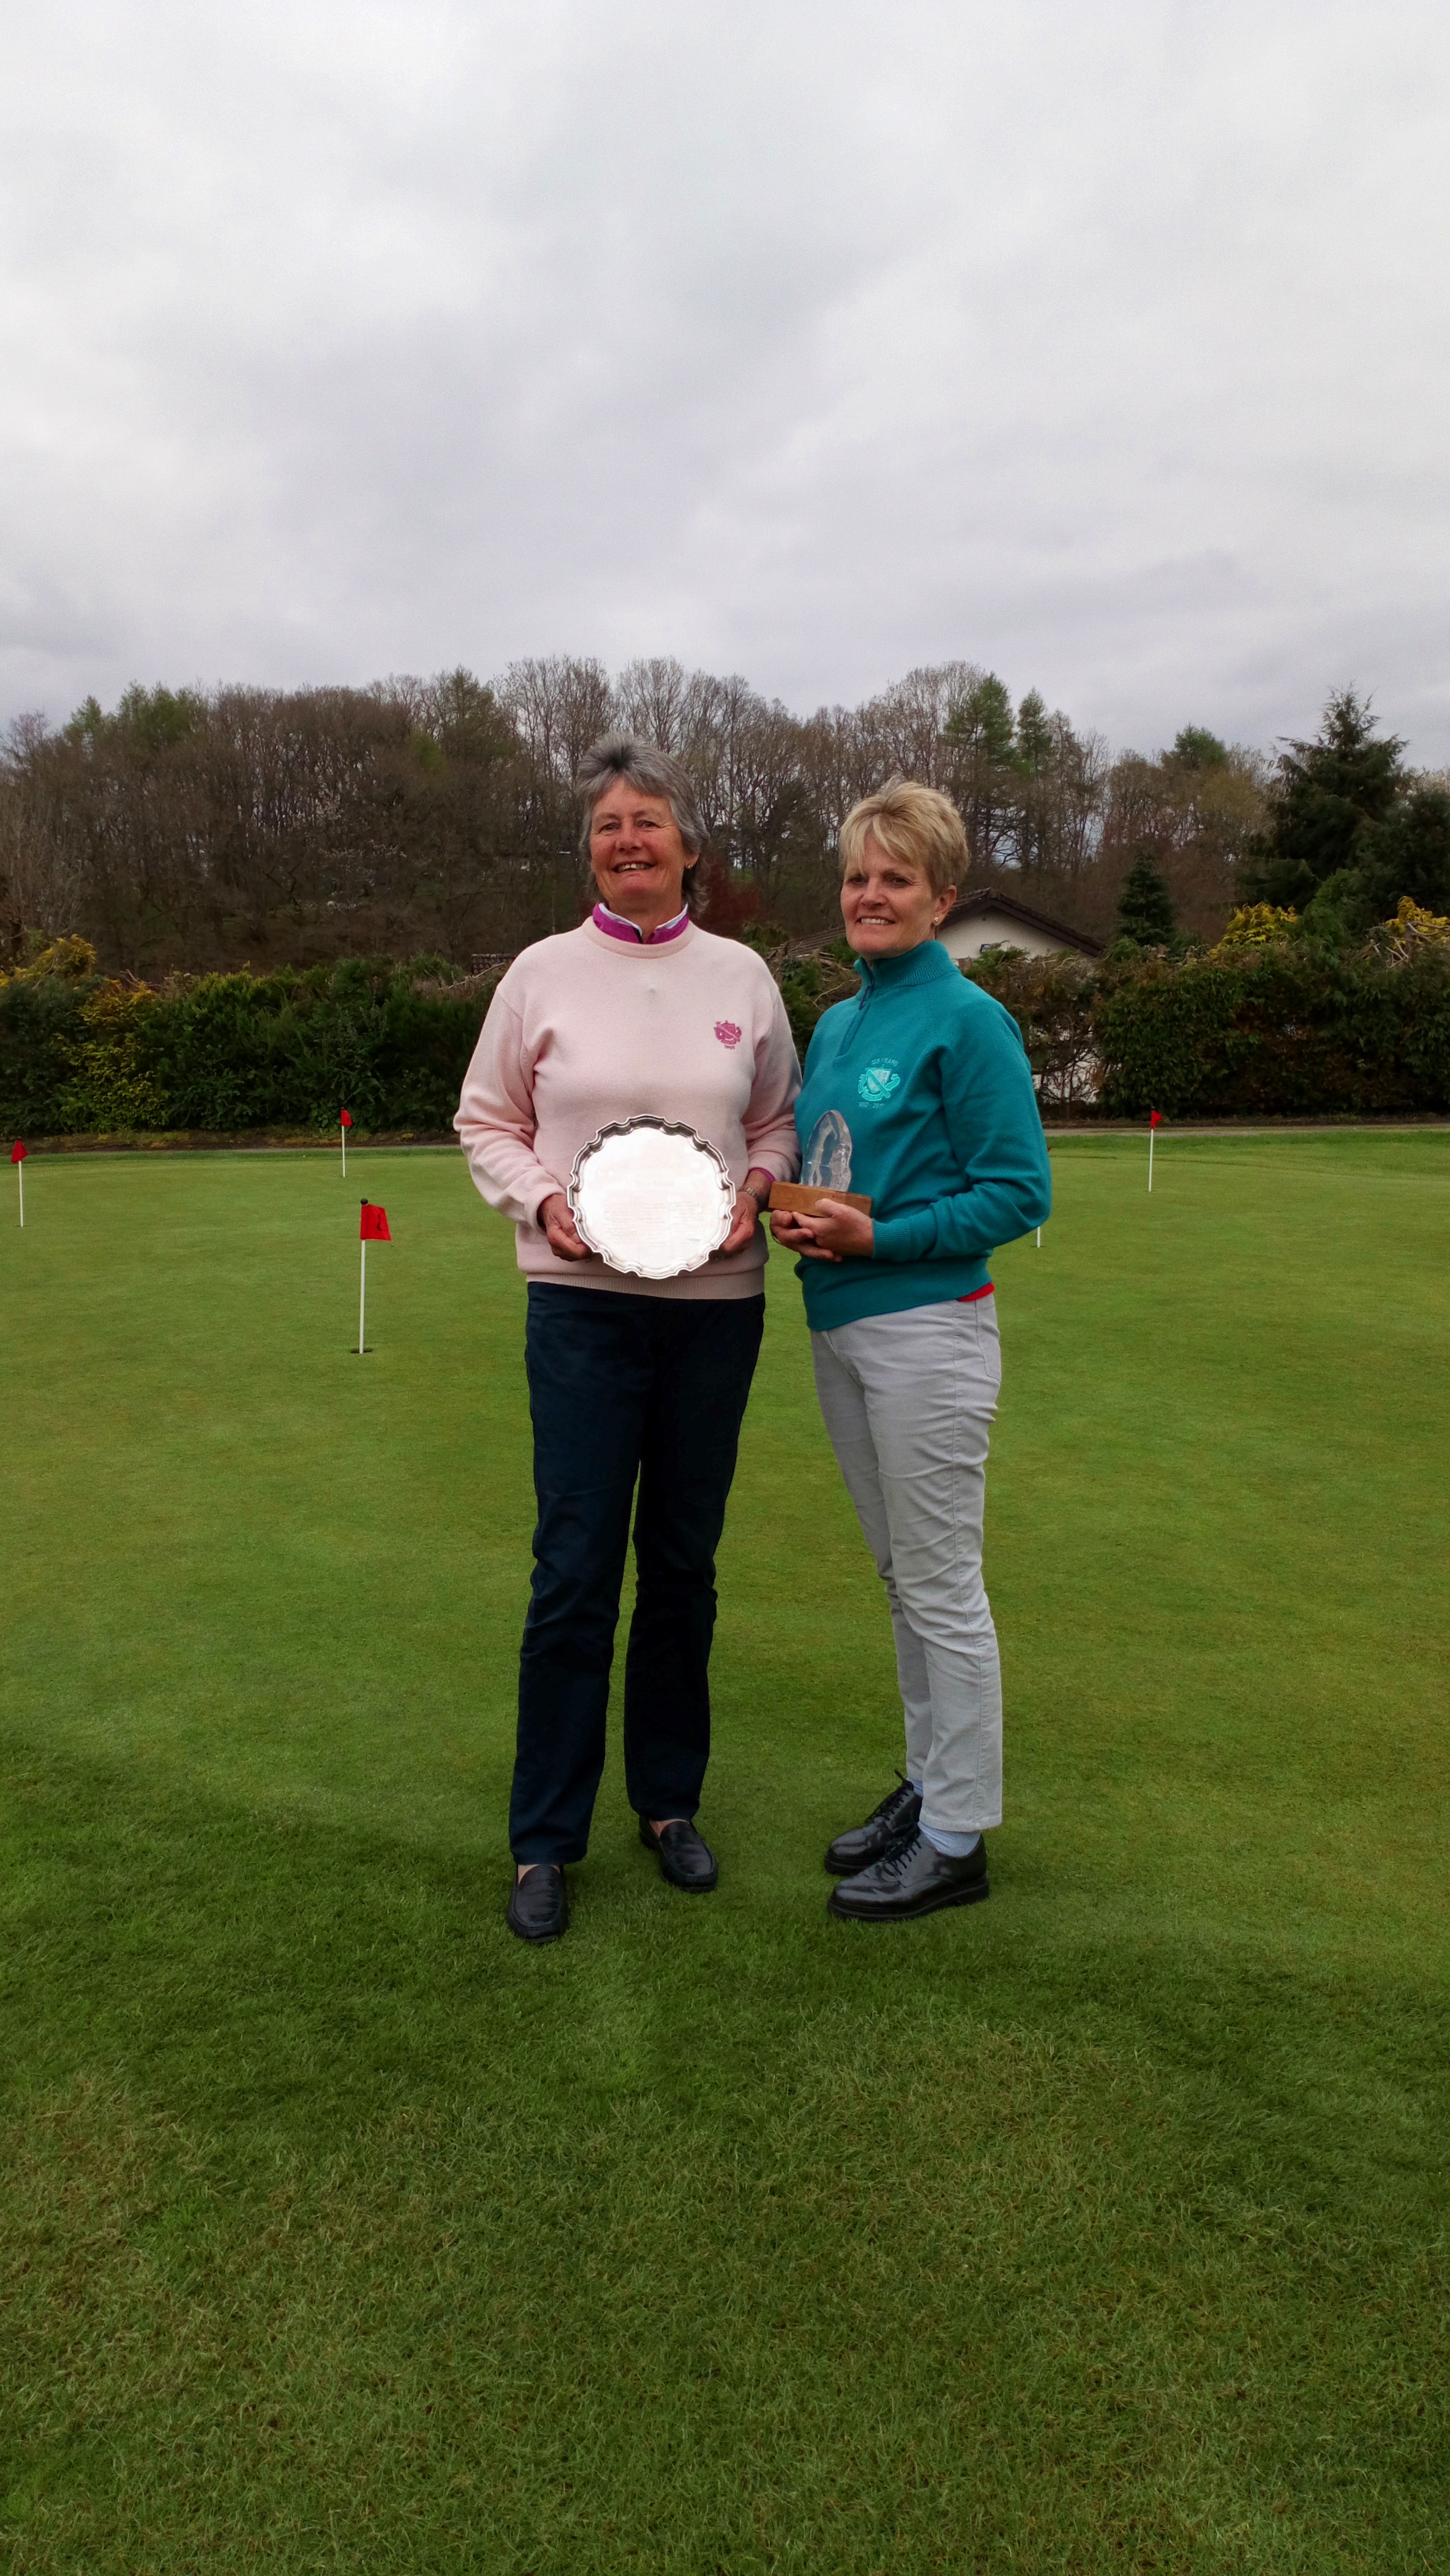 2018 Pat Morgan Championship Plate Winner - Sally Wilkinson, Aberdovey and Runner Up - Mary Upson, Aberdovey